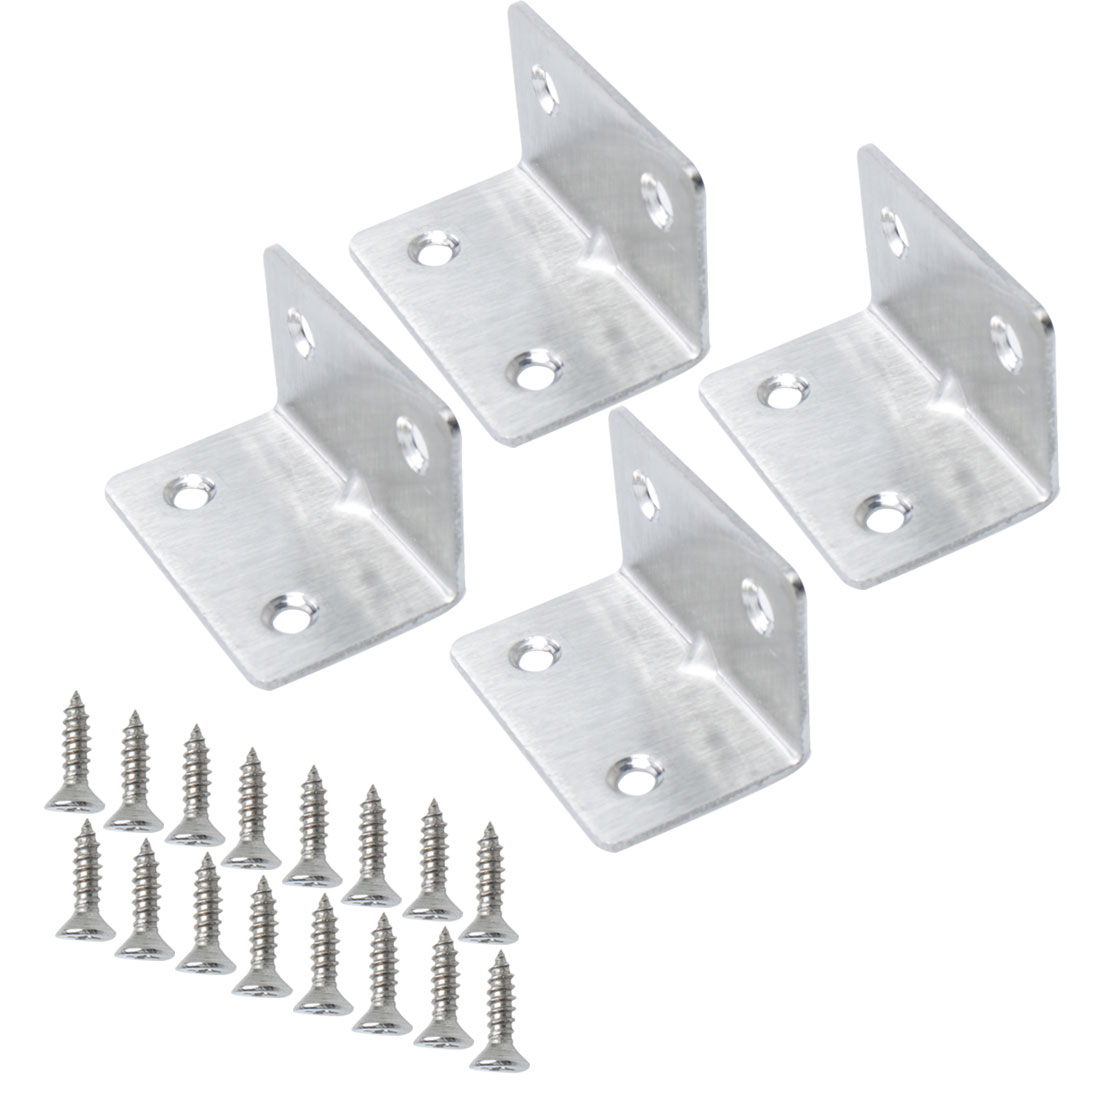 Angle Bracket Stainless Steel Corner Brace Shelf Support w Screw 33 x 33mm, 4pcs